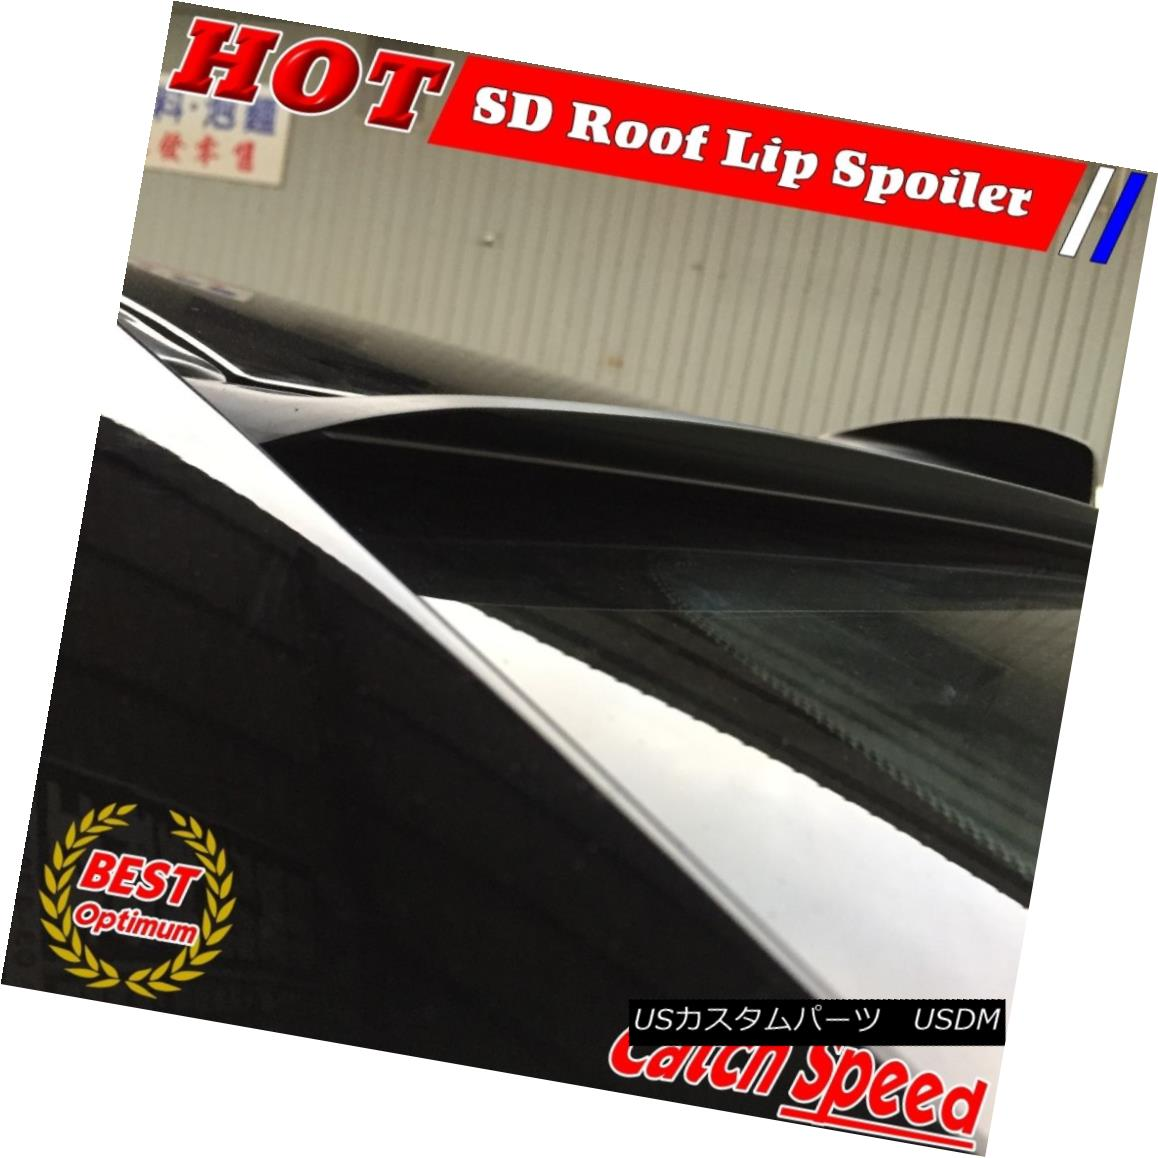 Painted VRS Type Rear Window Wing Roof Spoiler For Cadillac 11-15 CTS-V Coupe